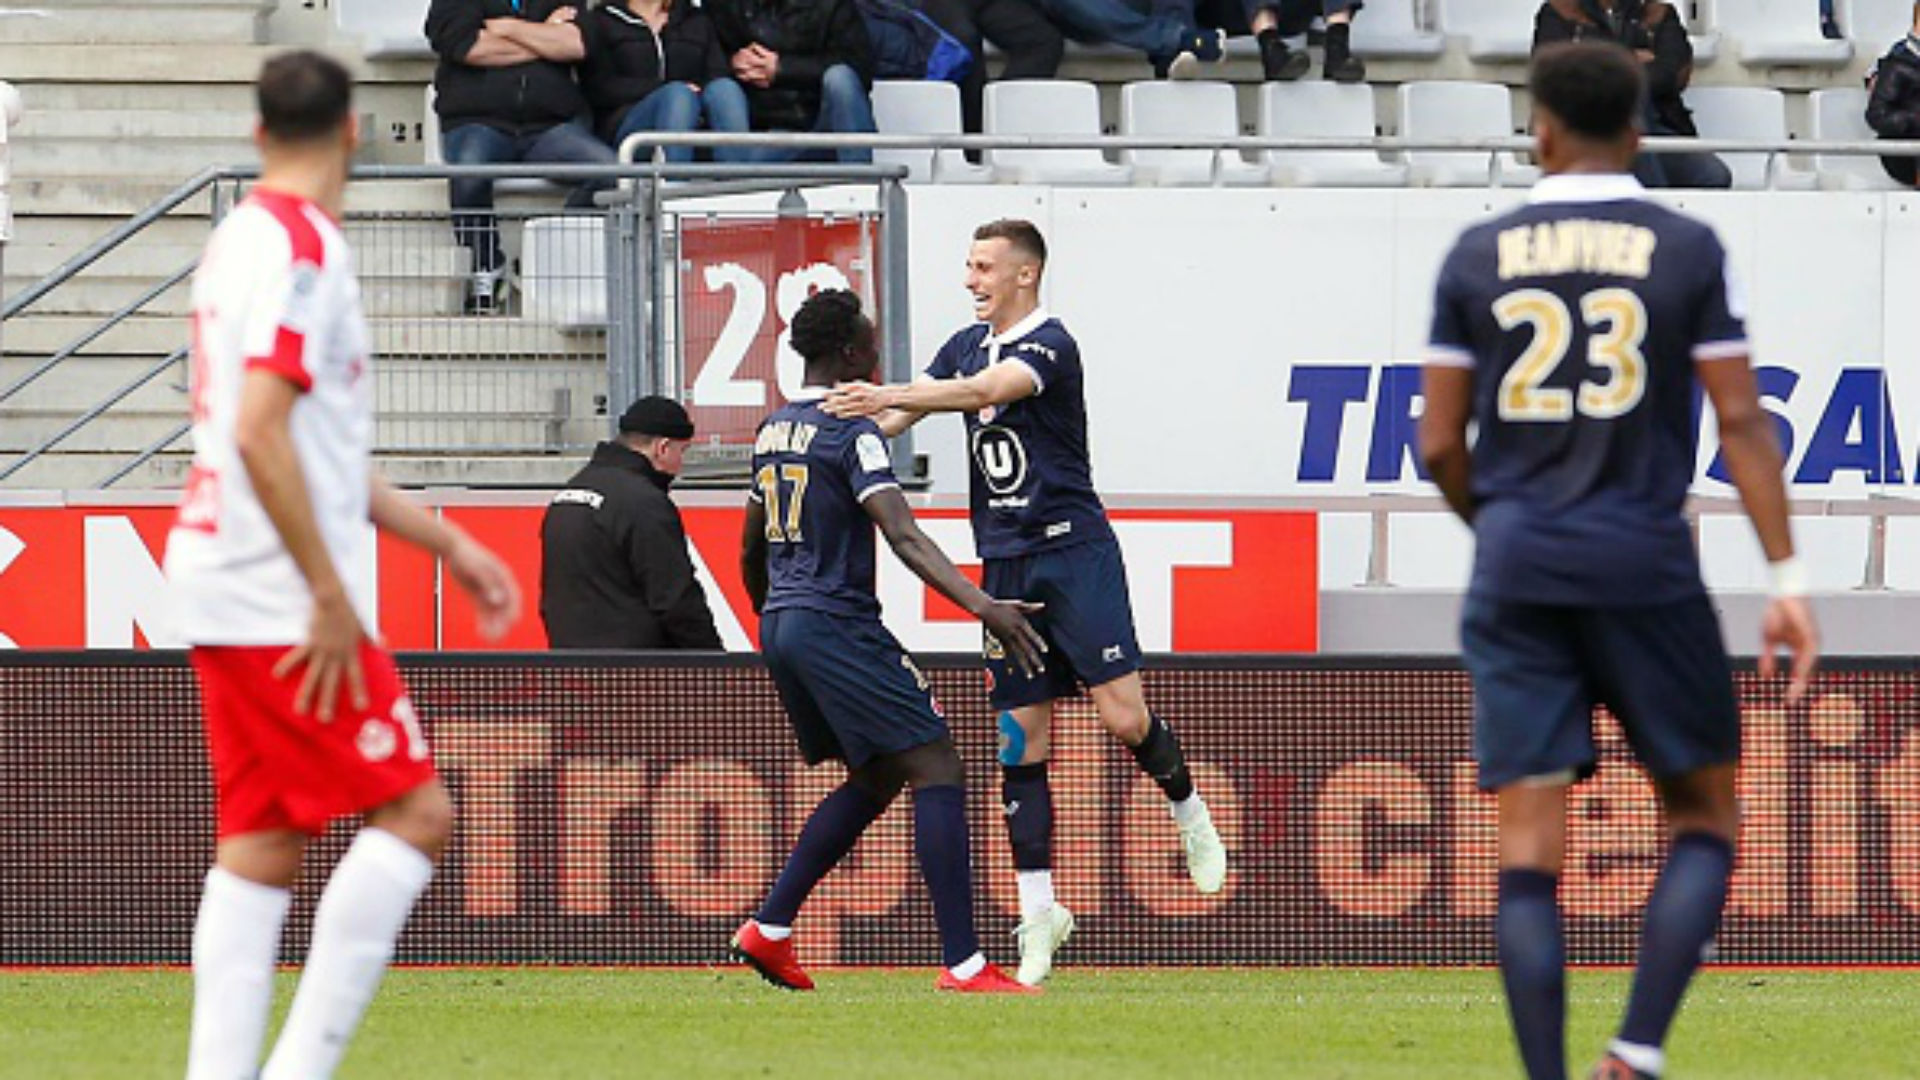 Remi Oudin Ligue 2 Reims